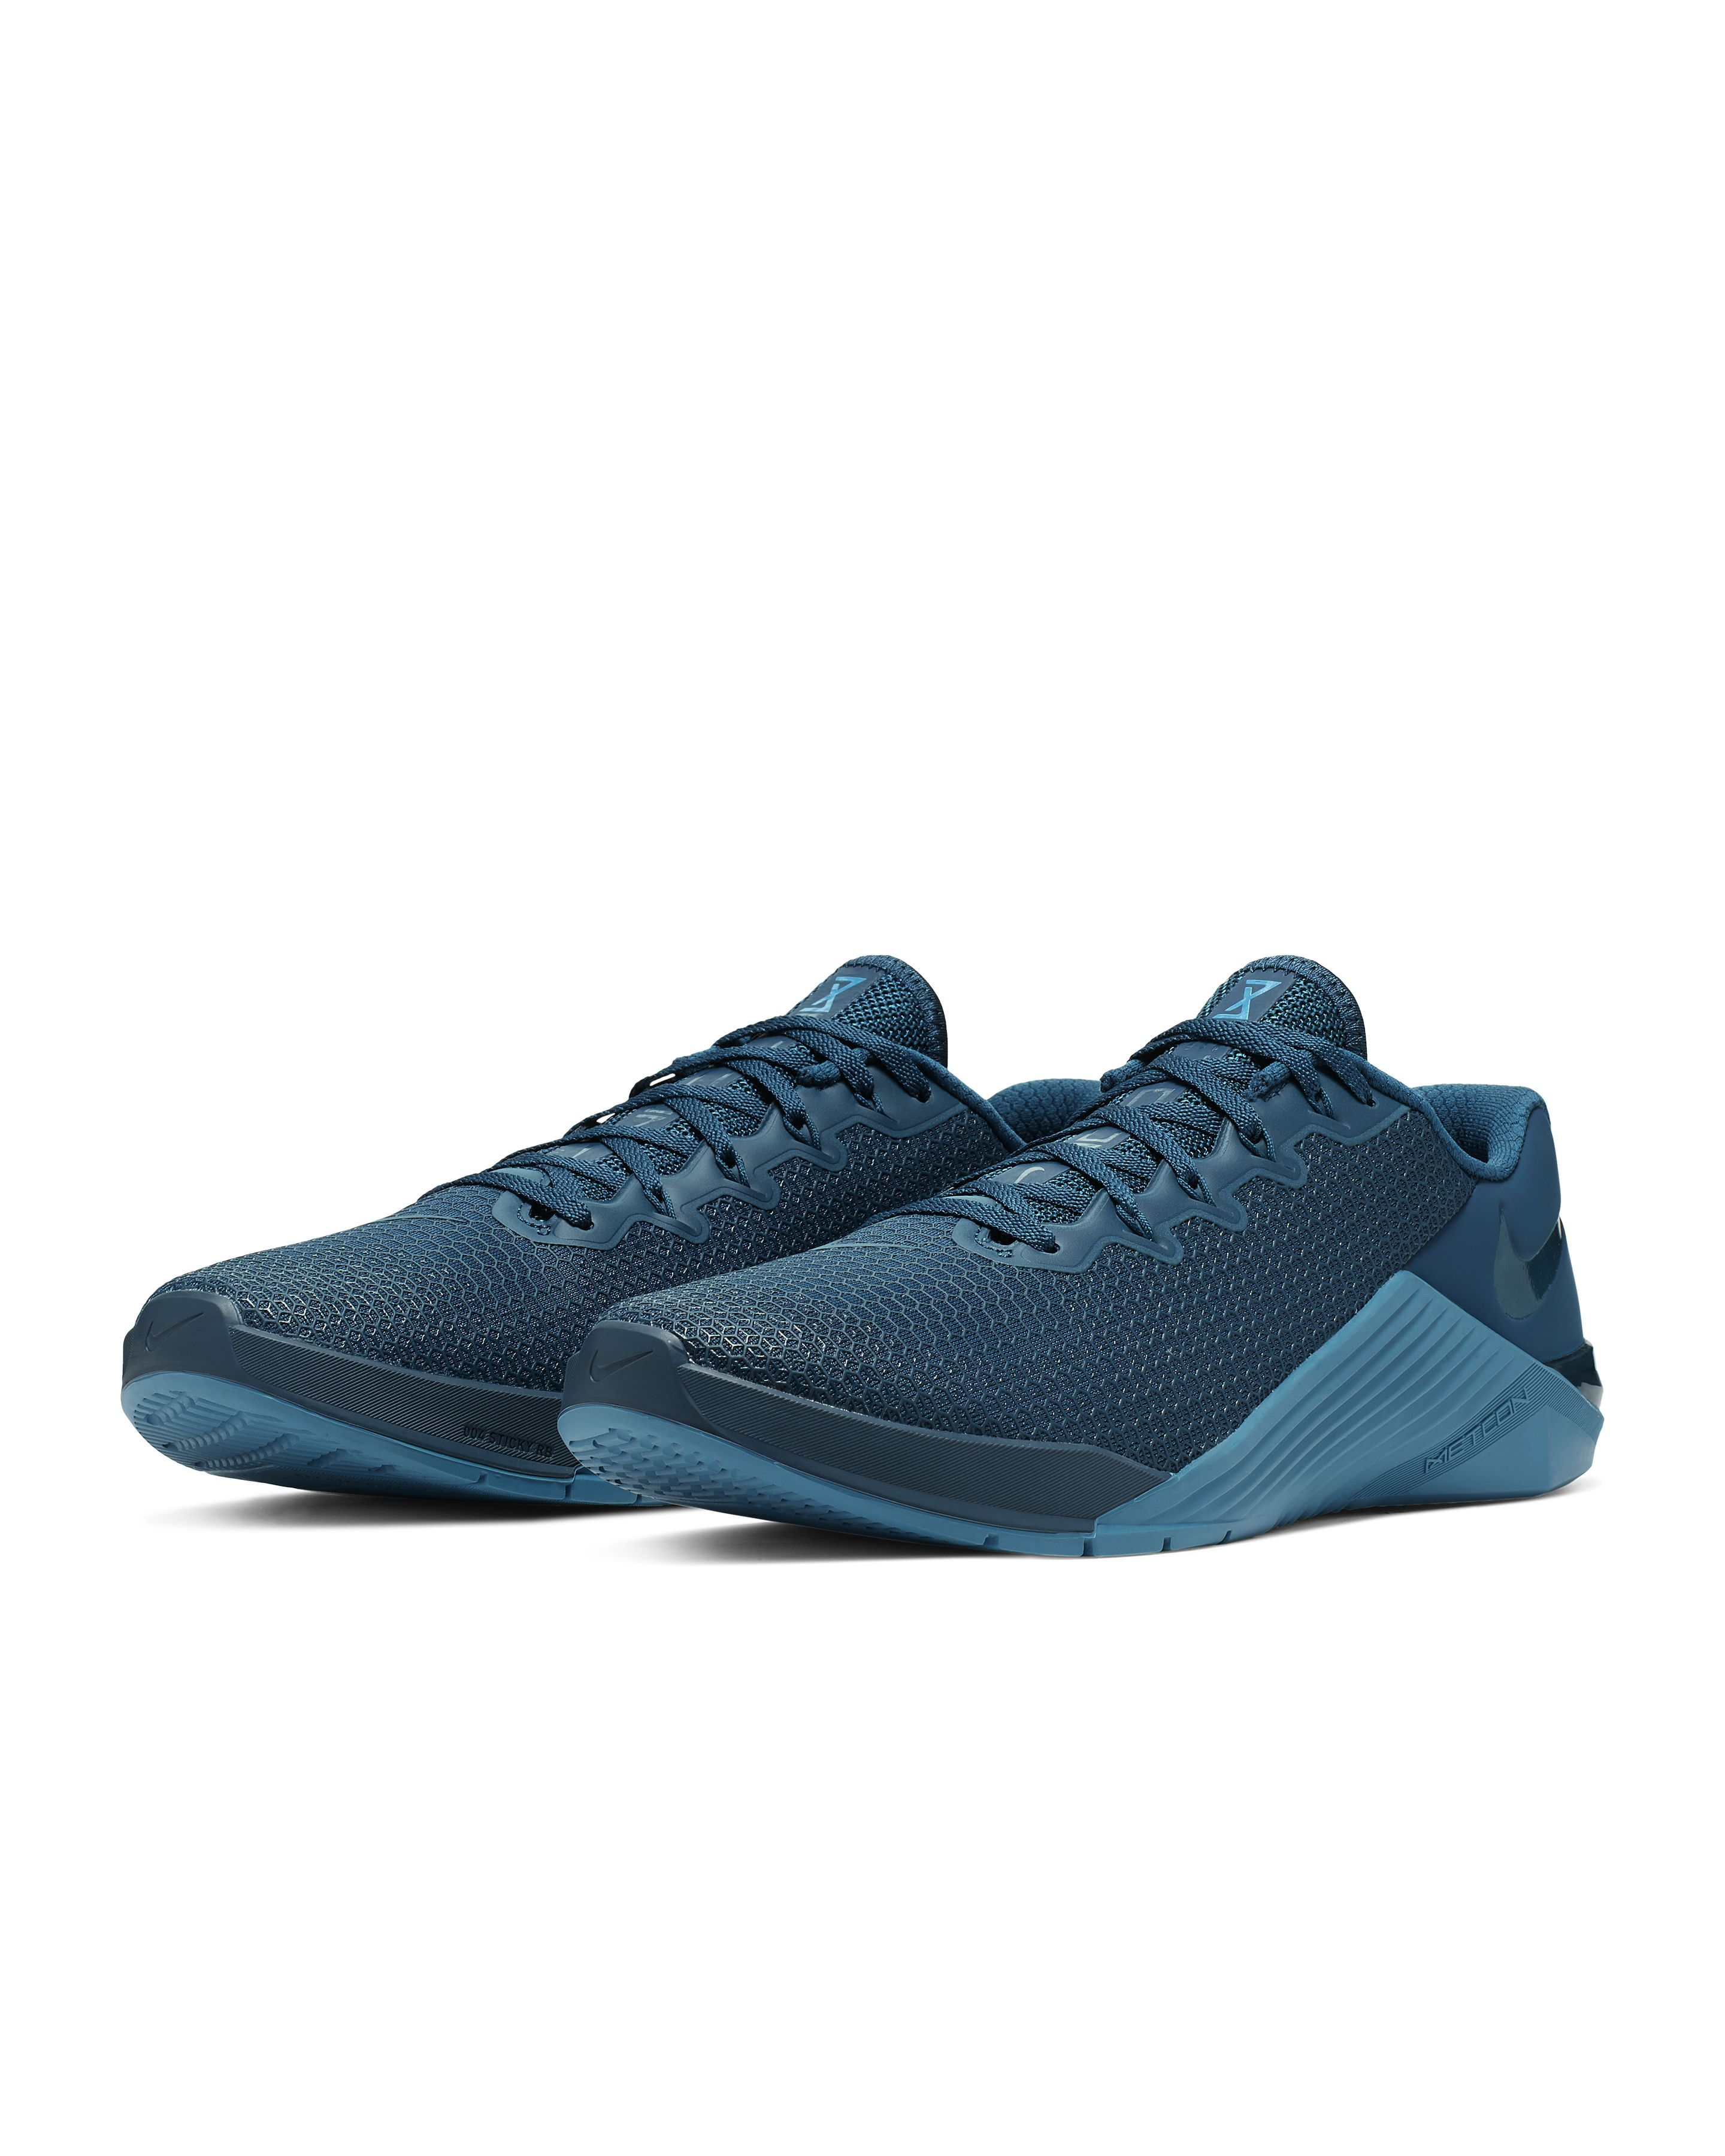 12 Best Shoes For Crossfit Training Workouts For Men In 2021